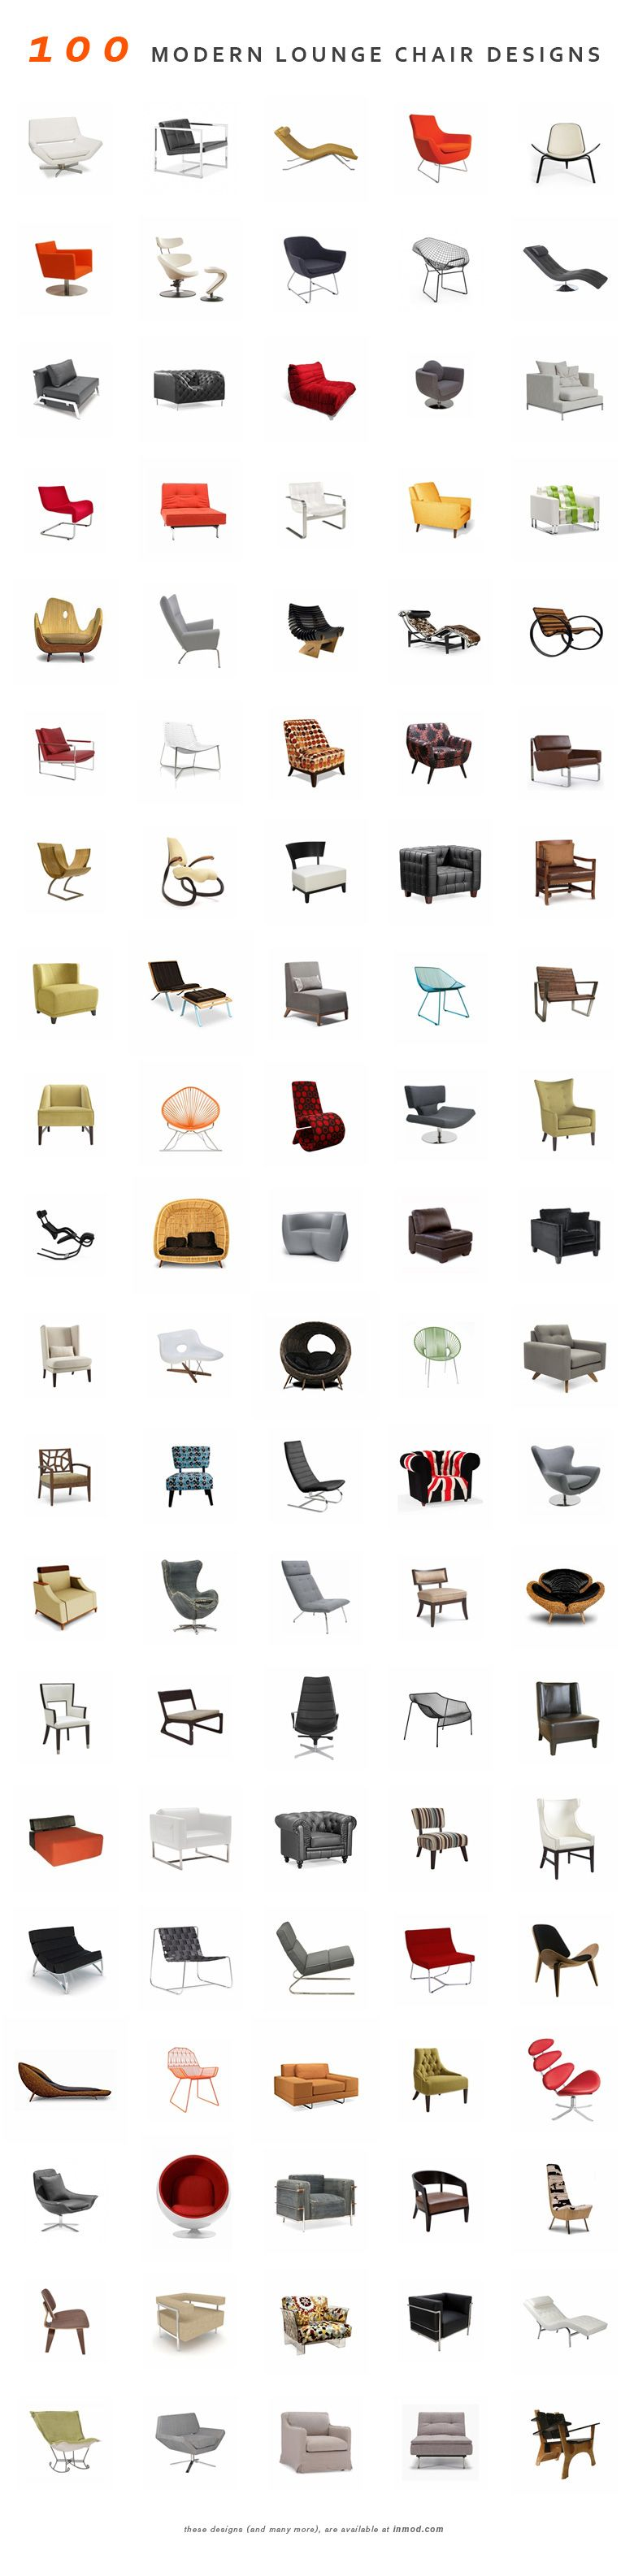 100 Modern Lounge Chairs (and many more) at Inmod.